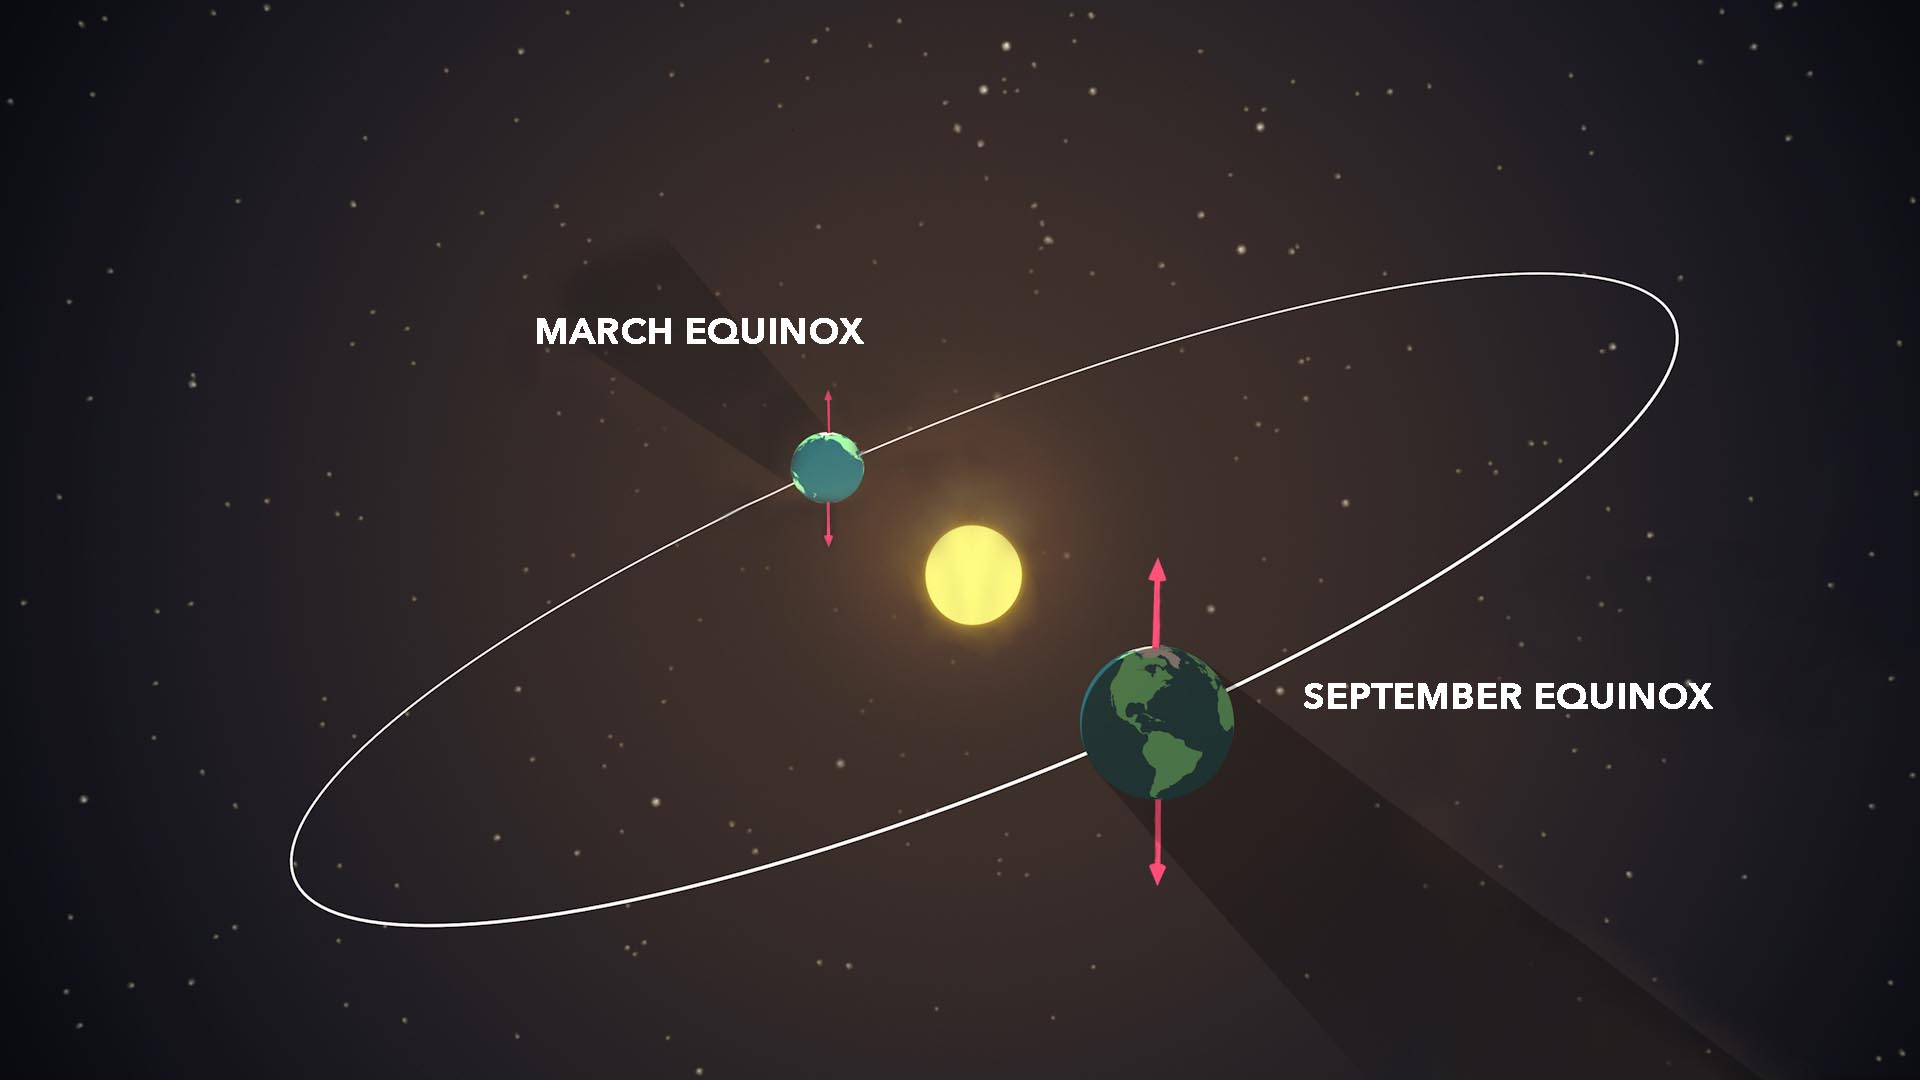 During the equinoxes, both hemispheres receive equal amounts of daylight.